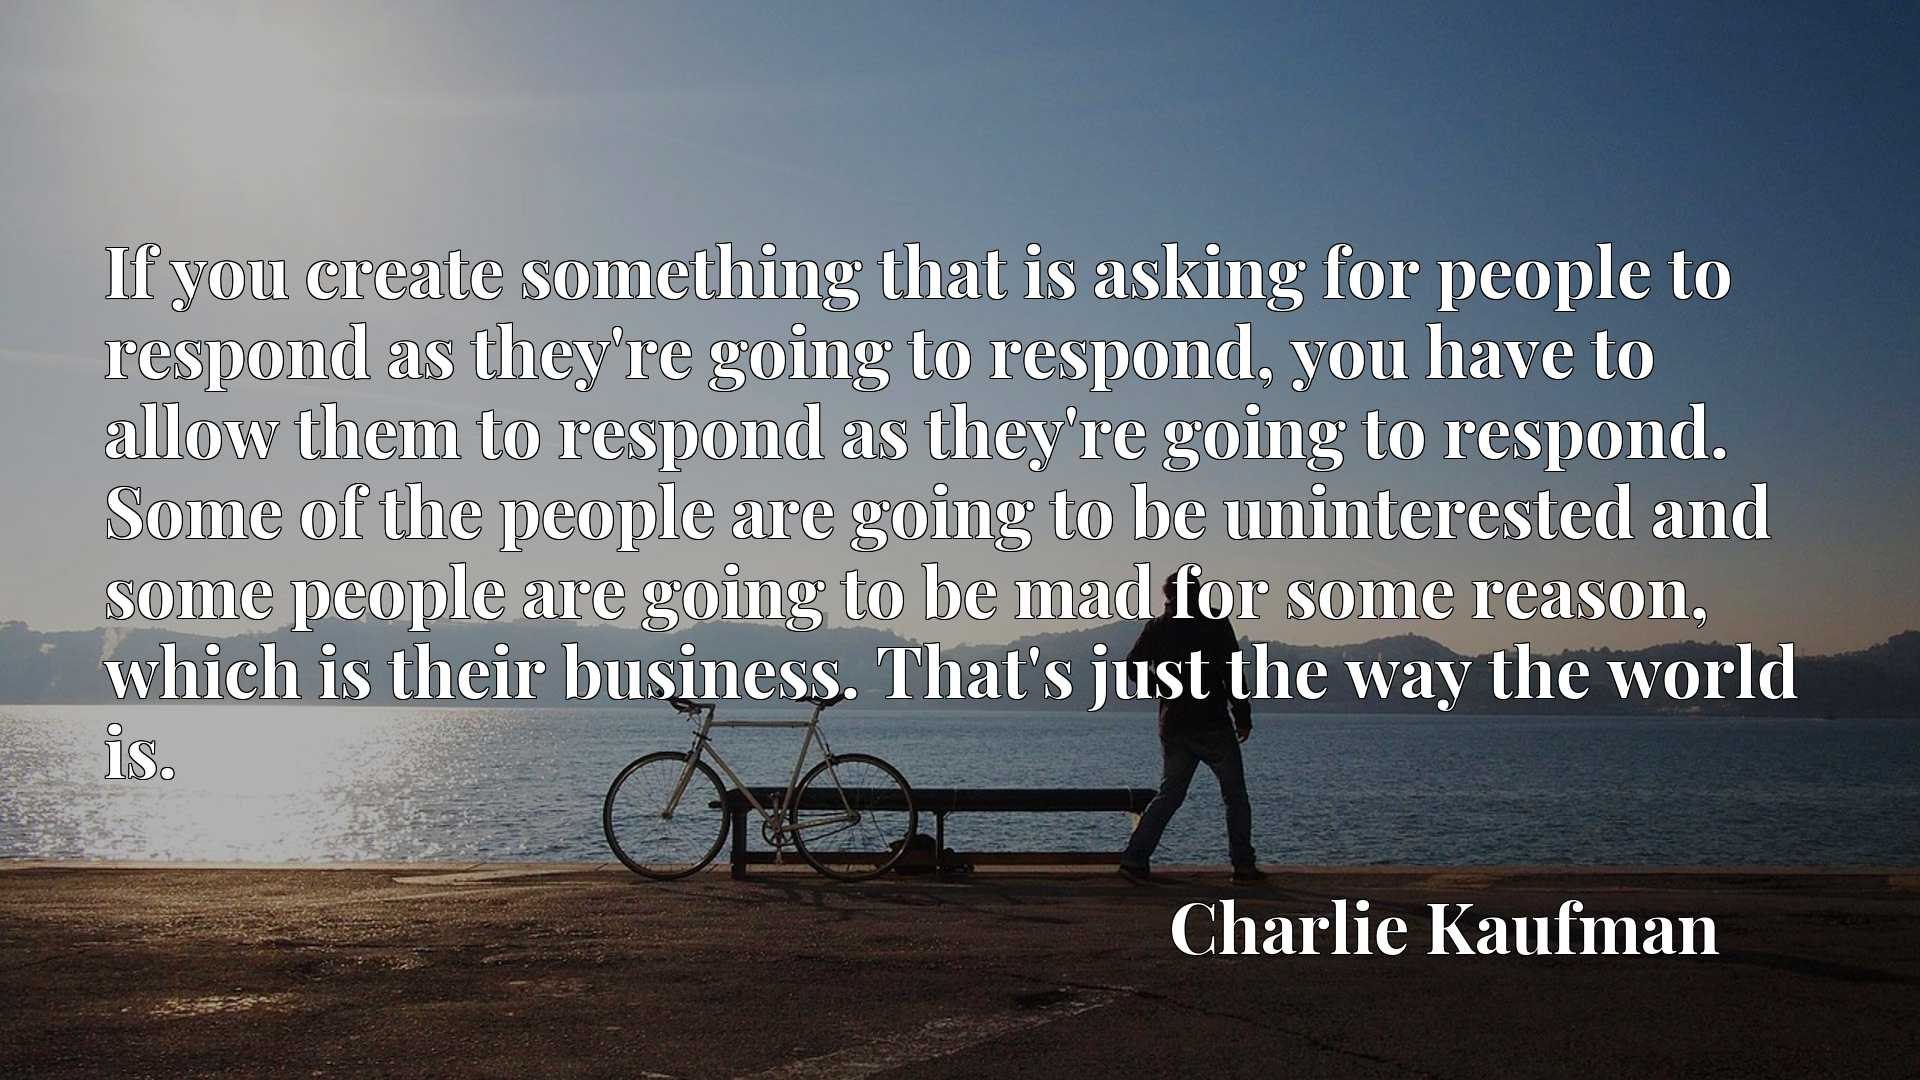 If you create something that is asking for people to respond as they're going to respond, you have to allow them to respond as they're going to respond. Some of the people are going to be uninterested and some people are going to be mad for some reason, which is their business. That's just the way the world is.